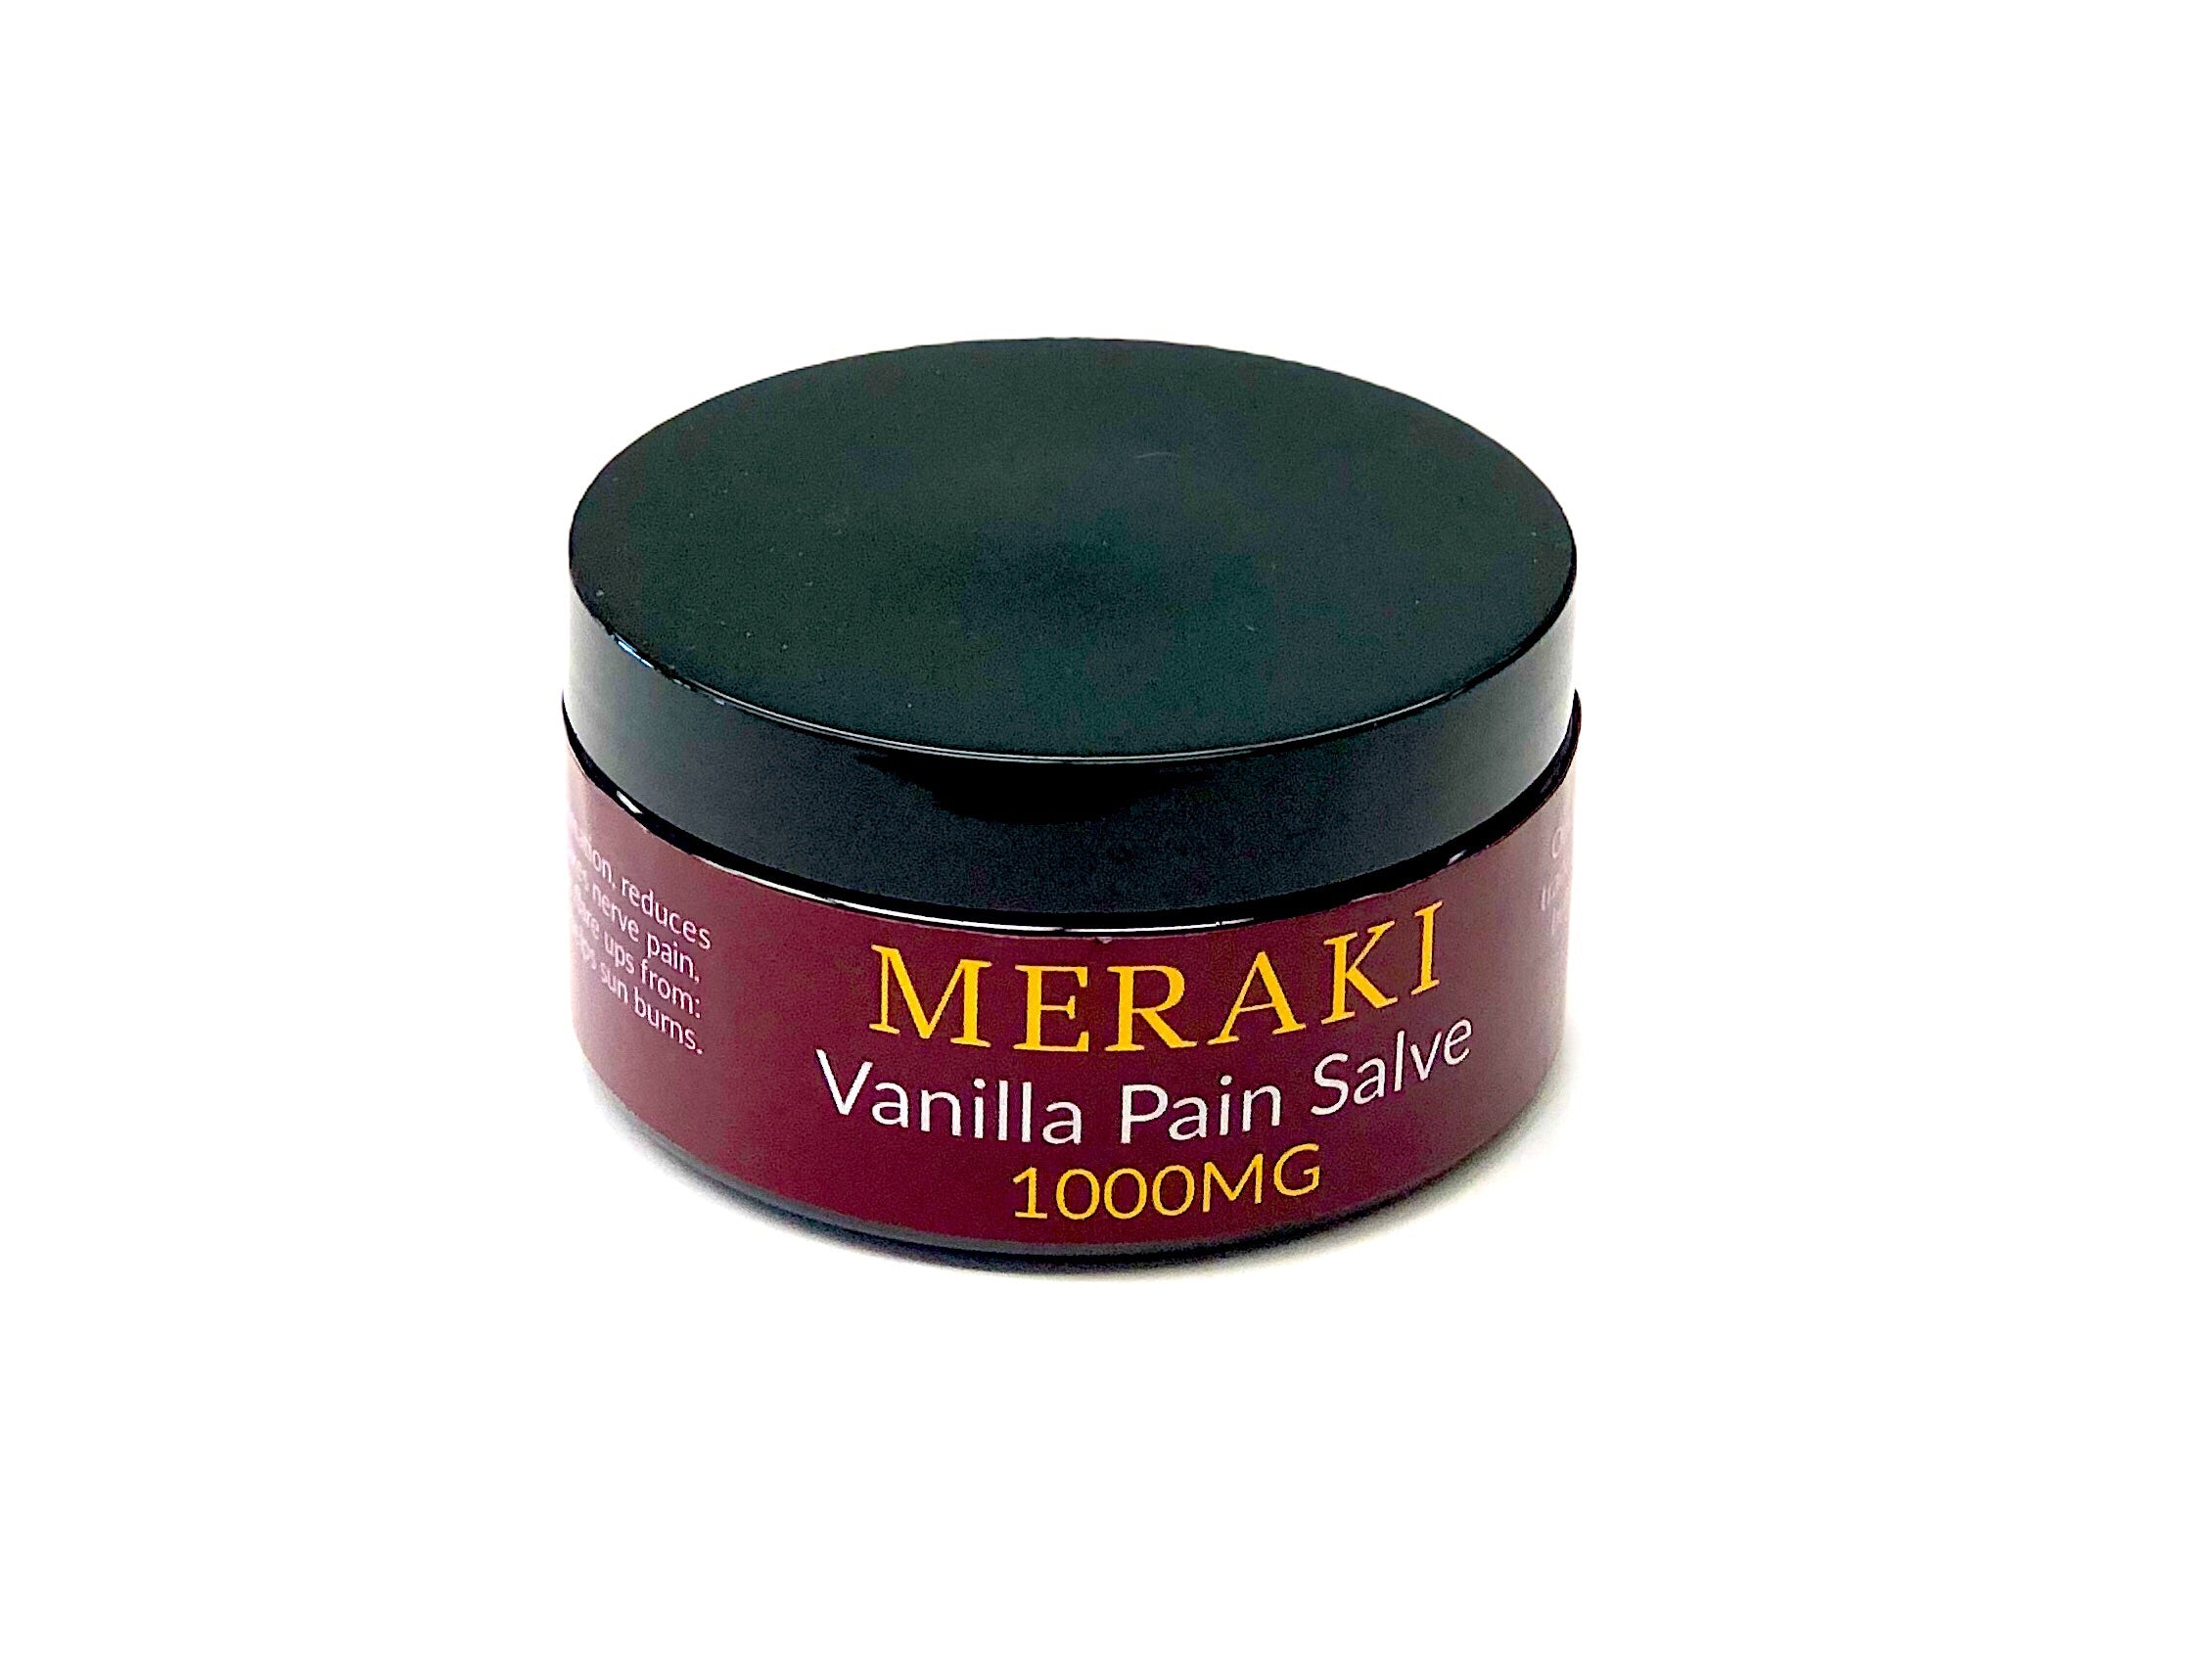 Meraki Pain Salve